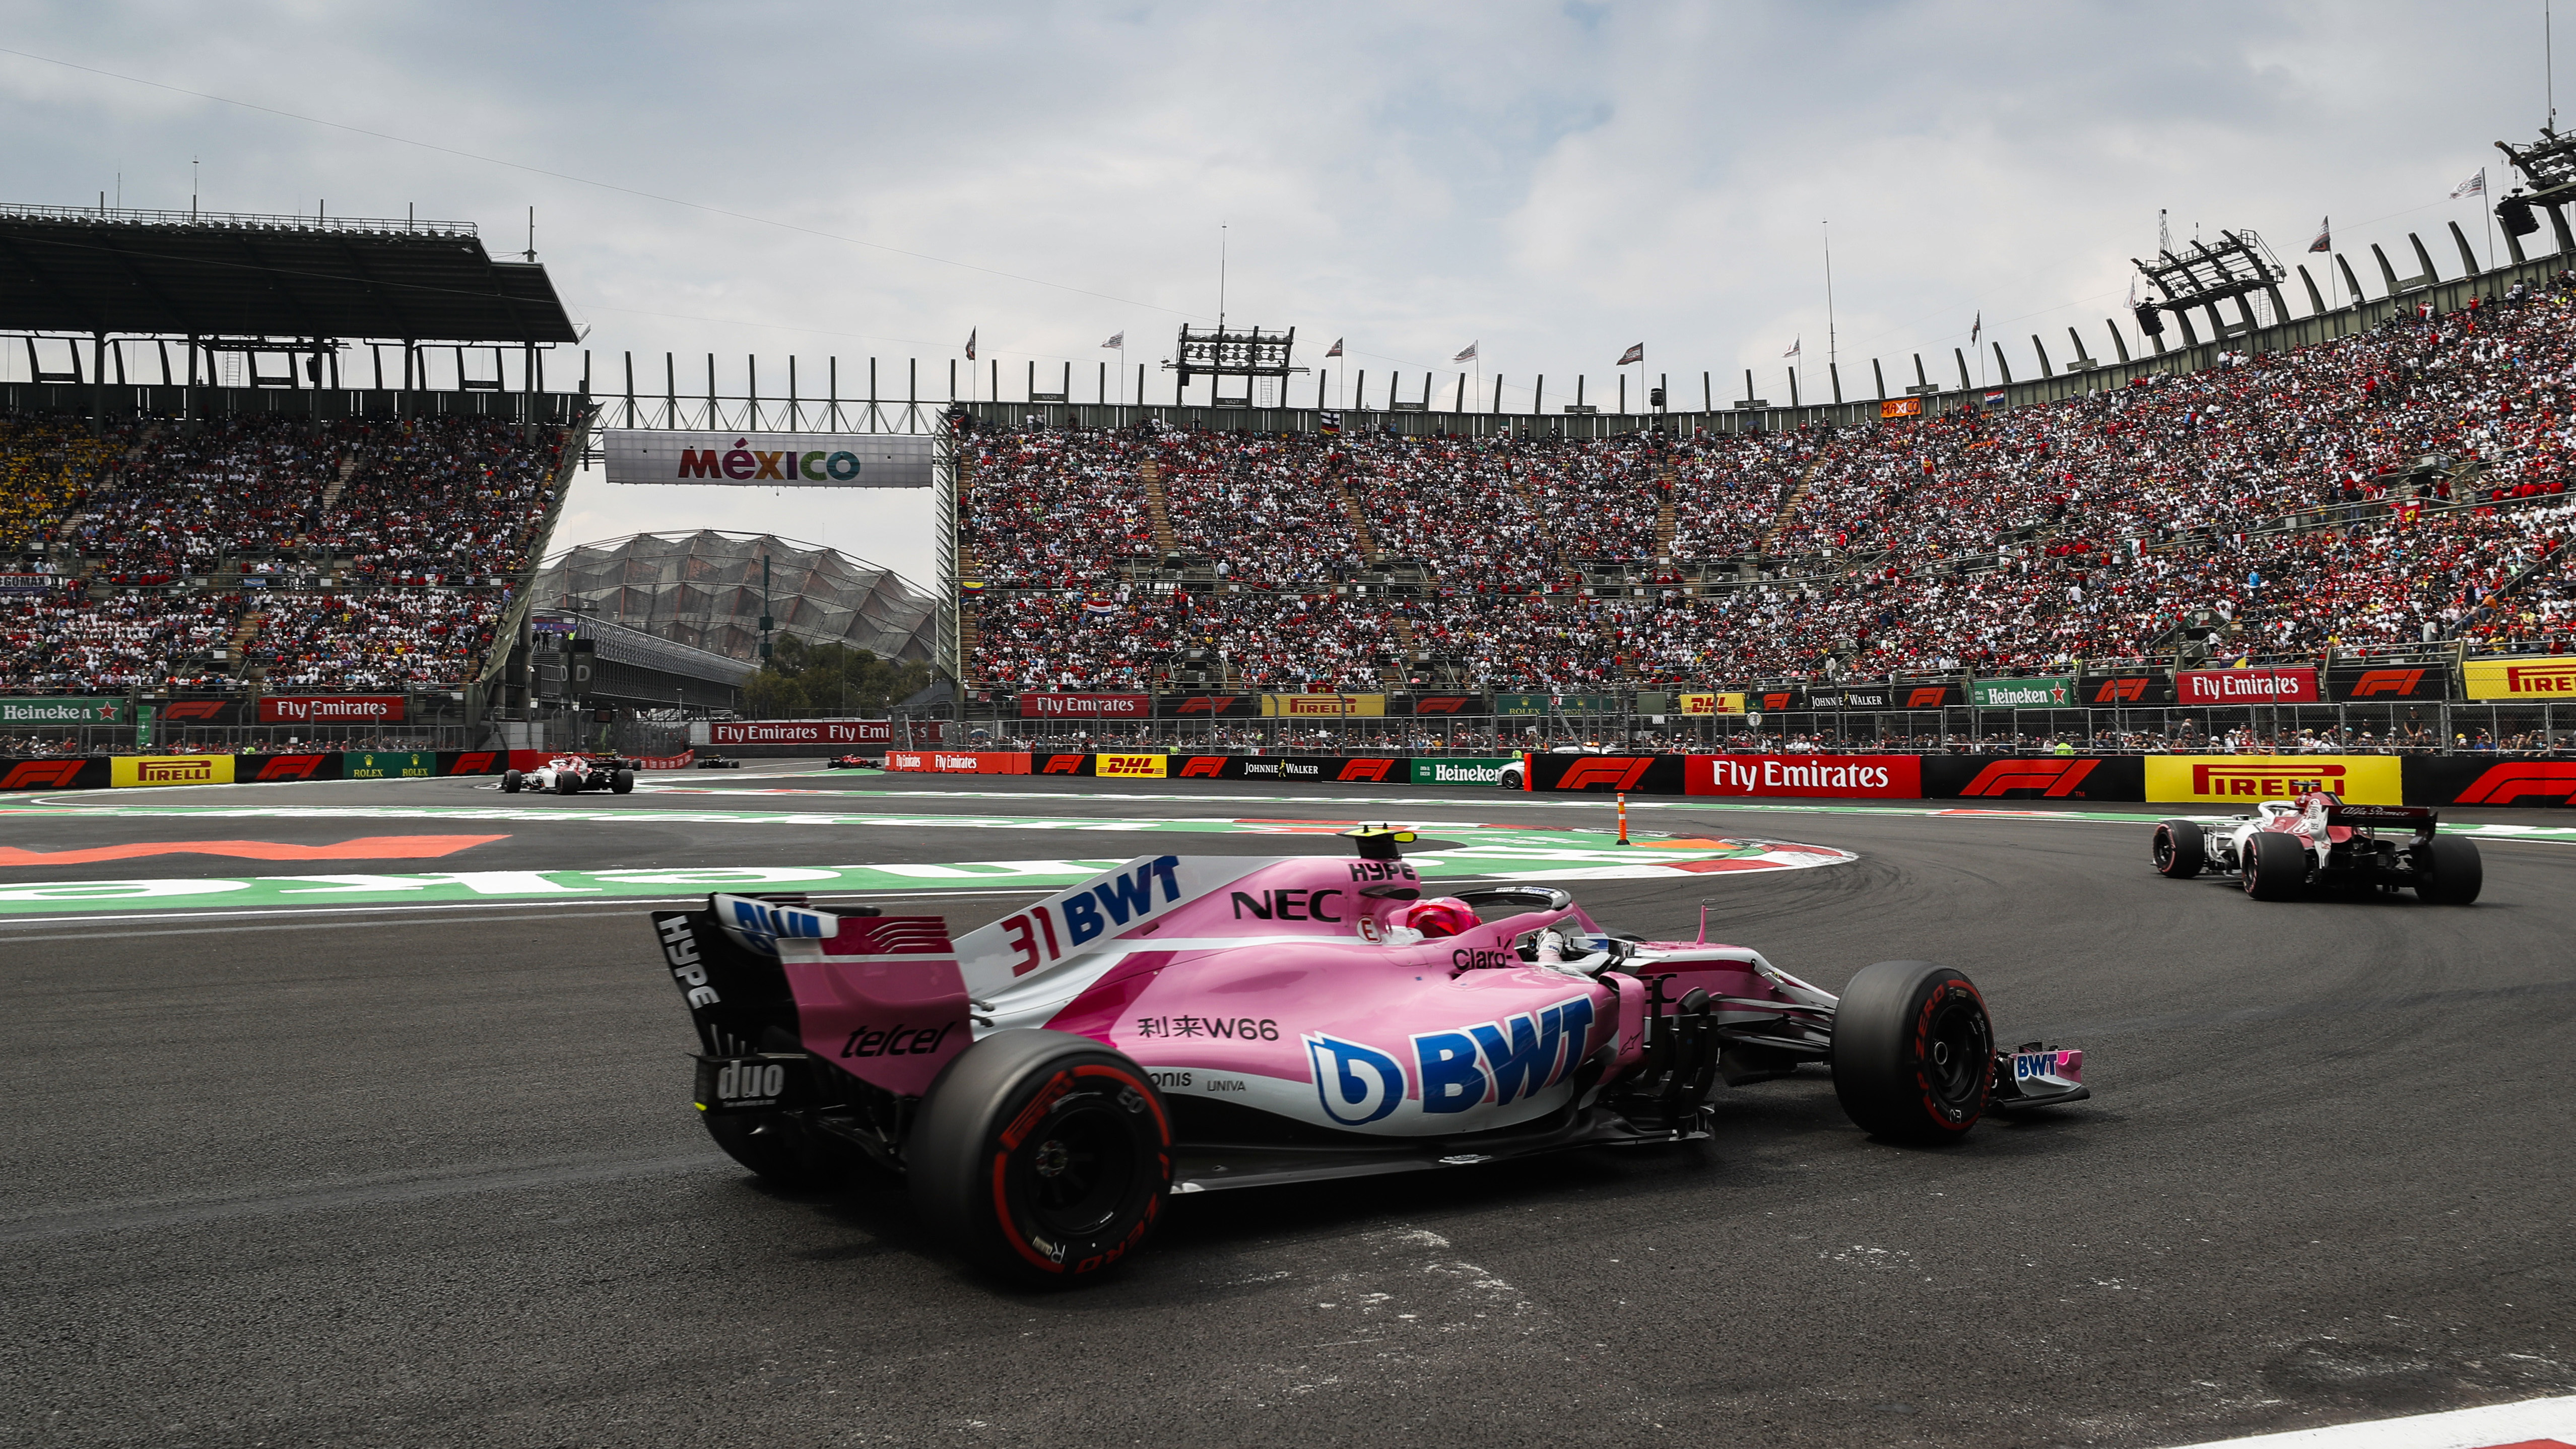 Mexican Grand Prix wins fourth-straight Best Promoter award at FIA Prize Giving